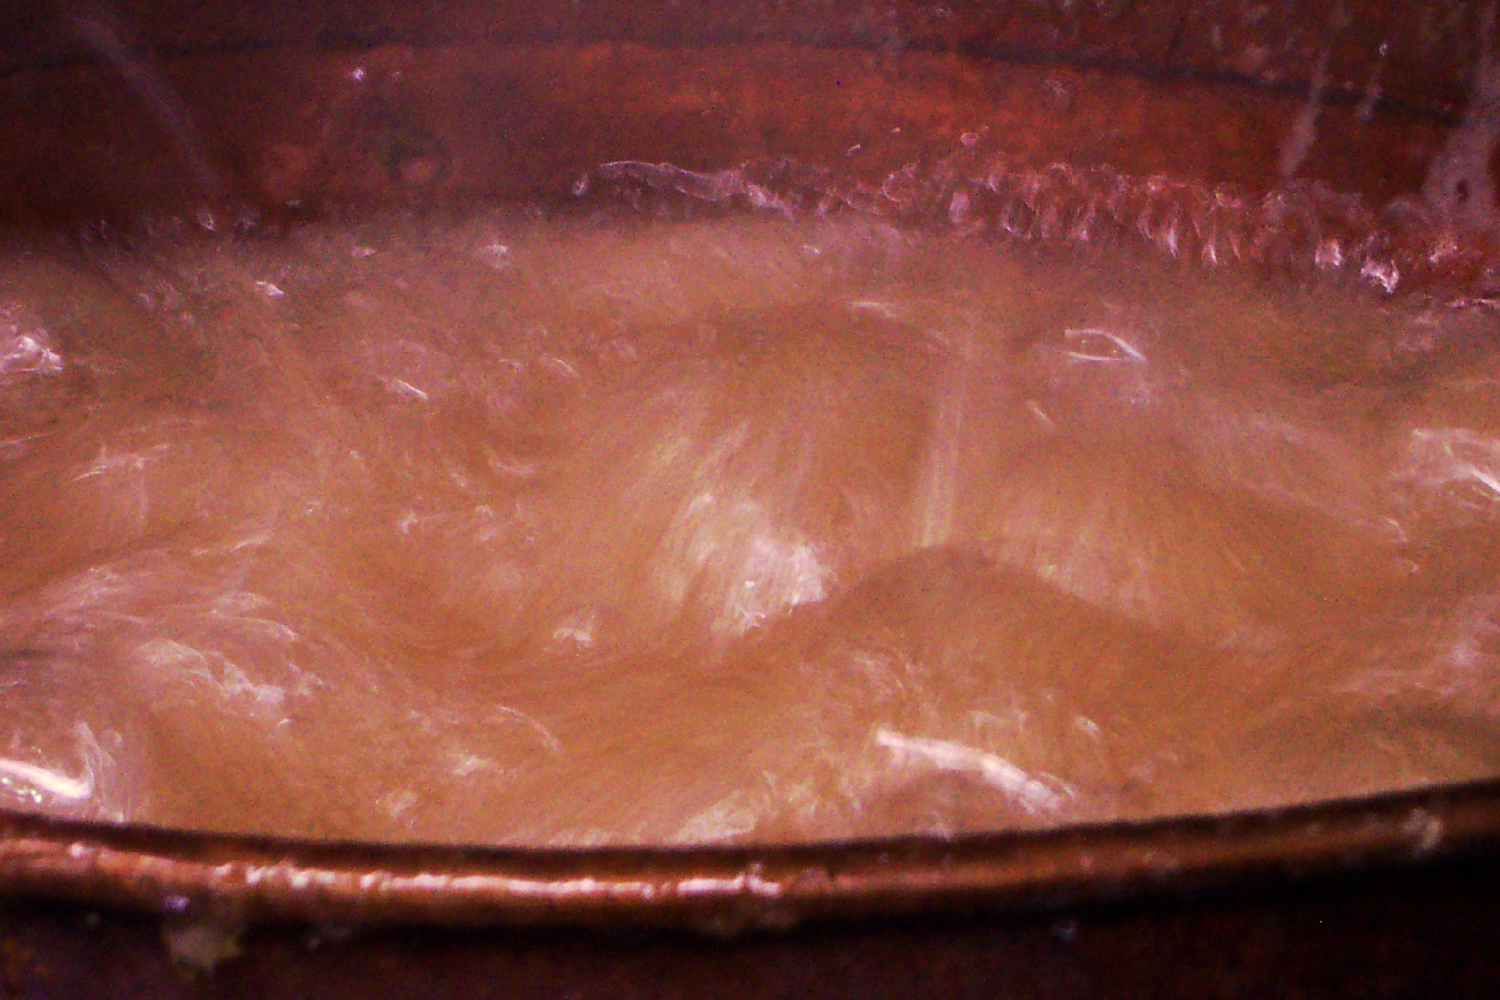 Boiling candy